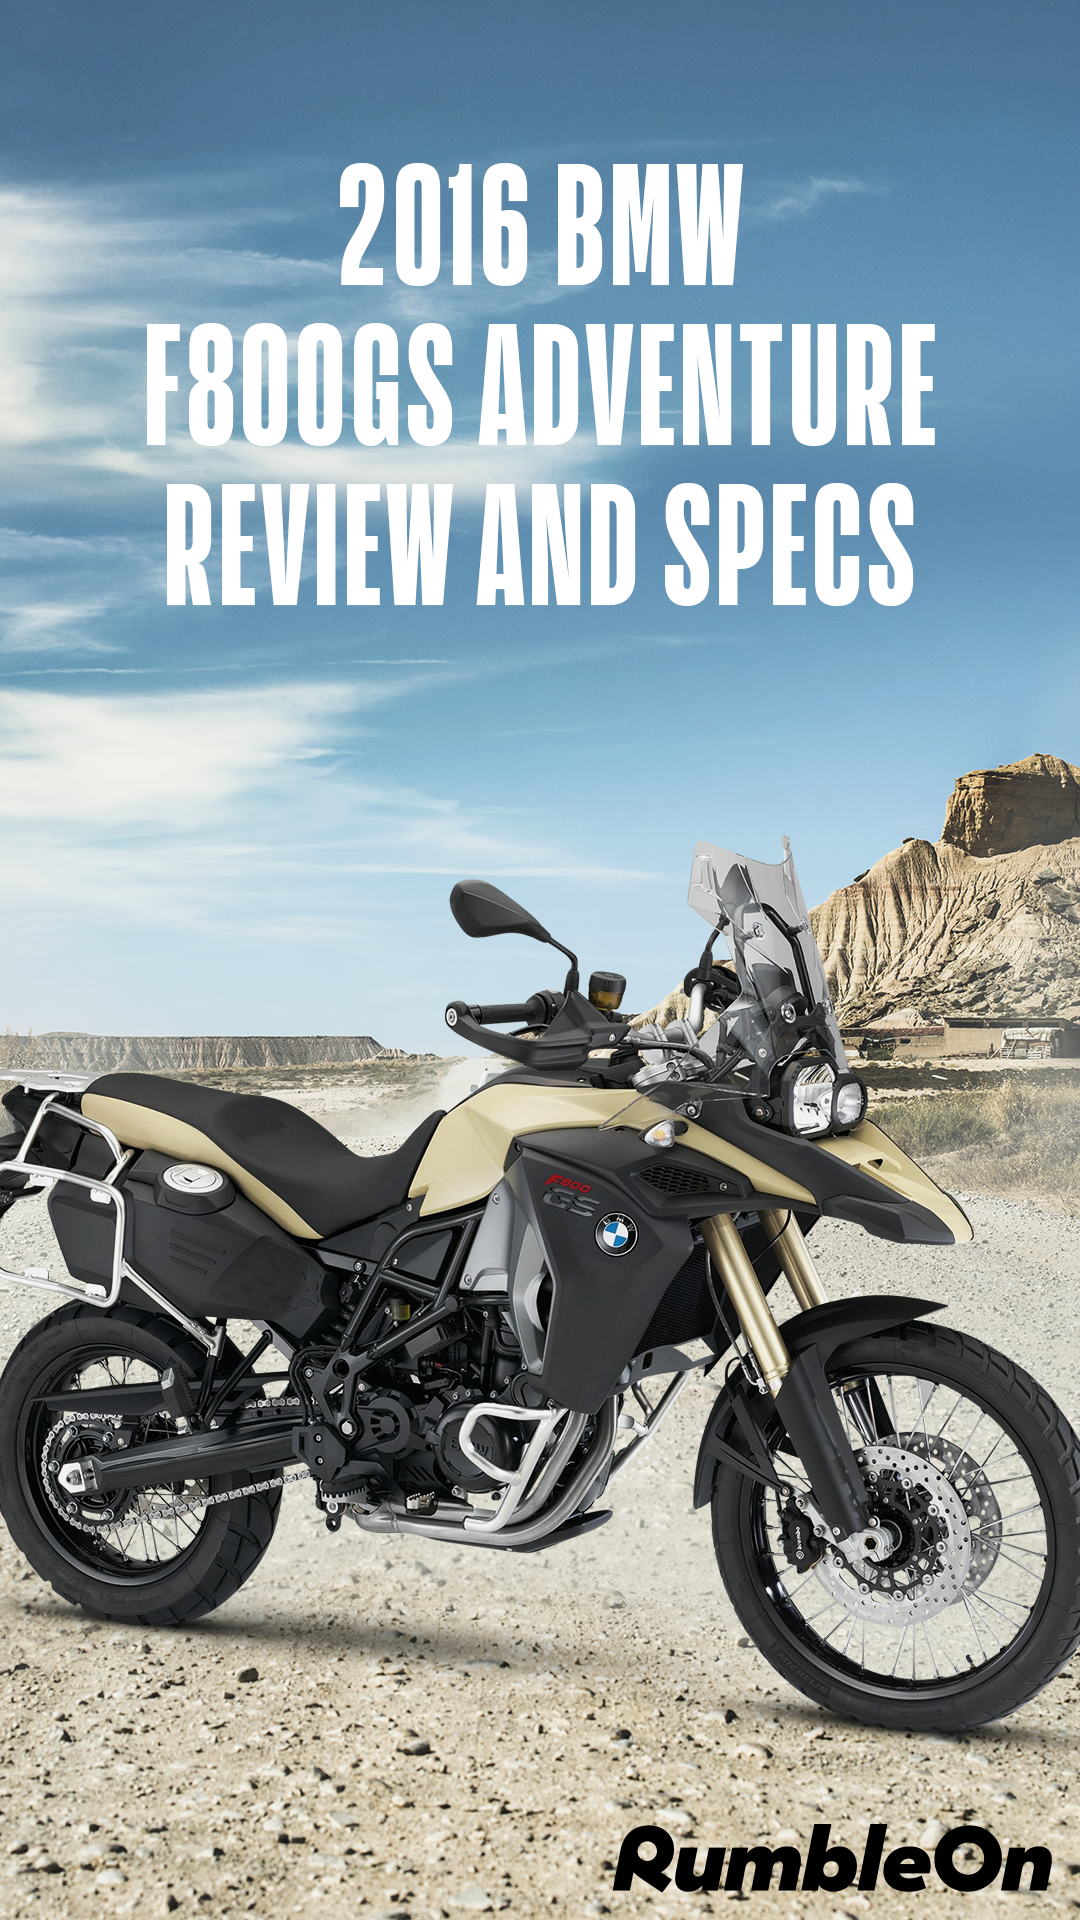 Model Overview 2016 Bmw F800gs Adventure Reviews And Specs In